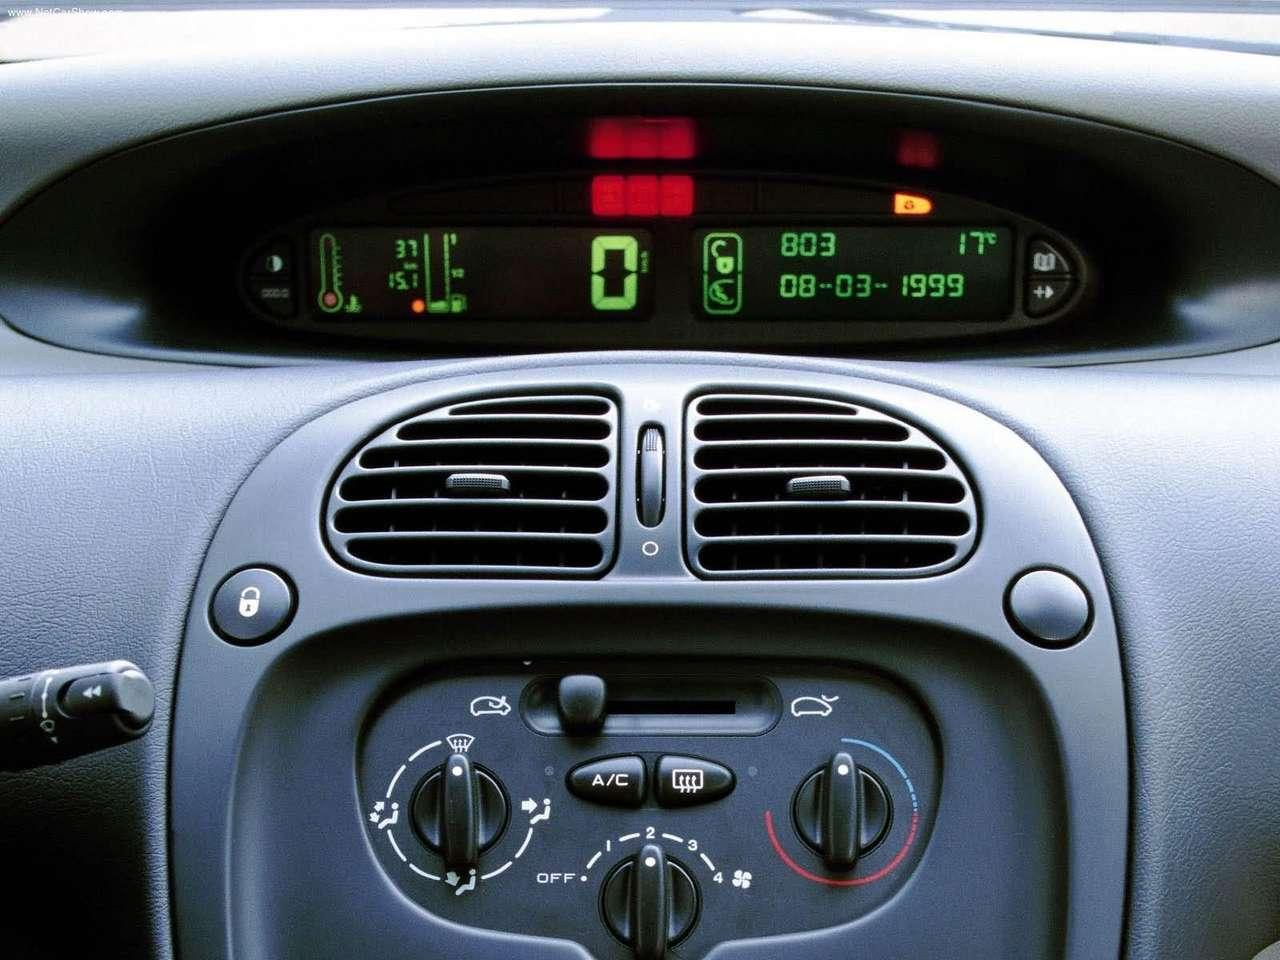 Xsara Picasso 1999 dash car